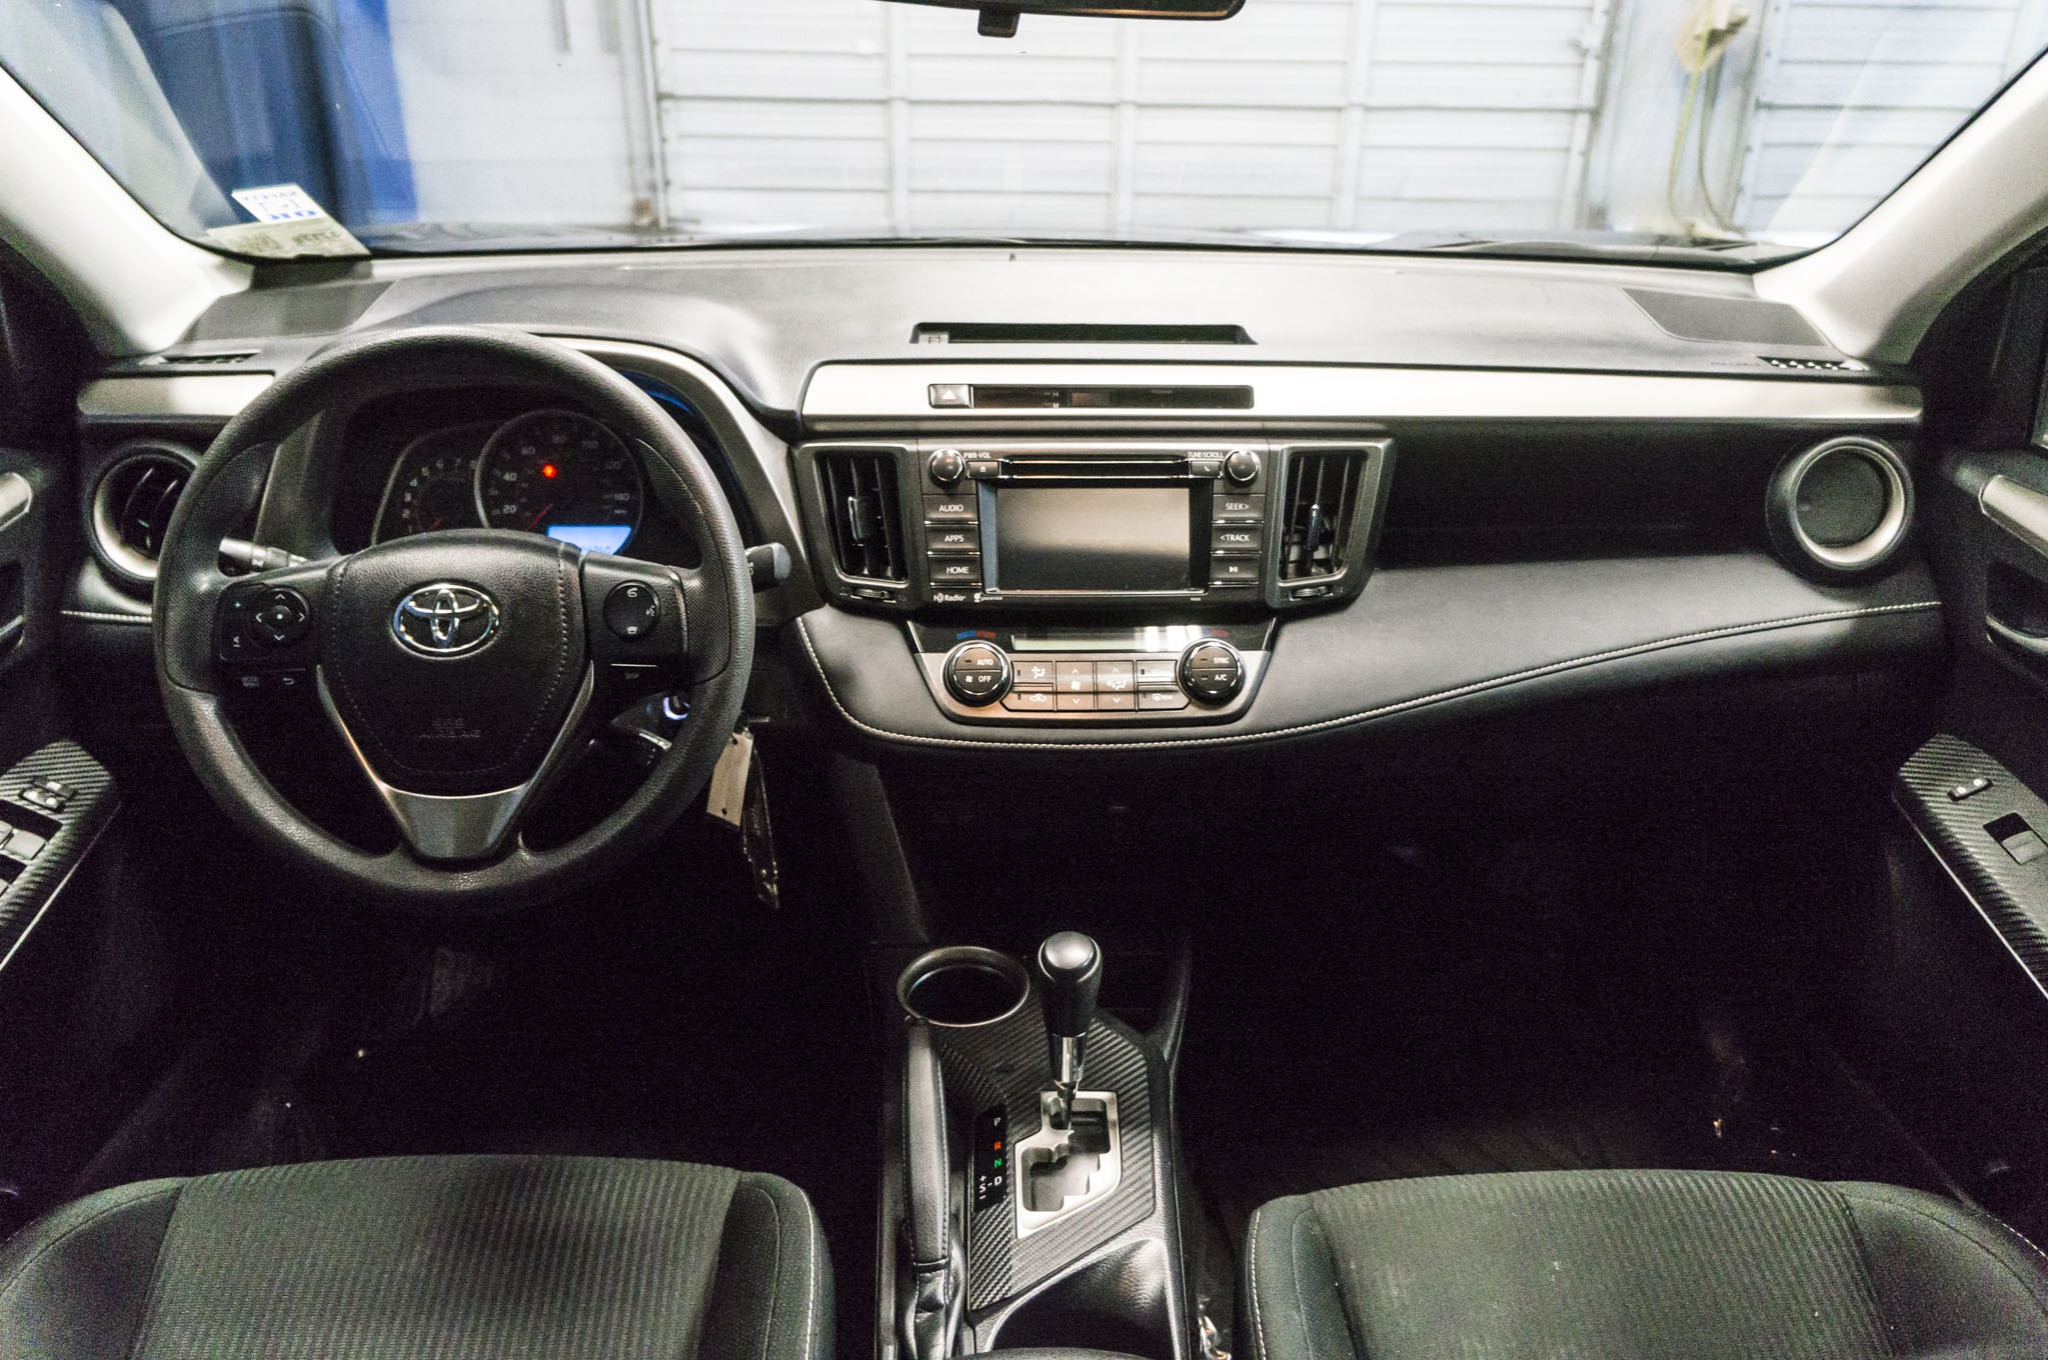 used 2015 toyota rav4 xle awd suv for sale 37179. Black Bedroom Furniture Sets. Home Design Ideas